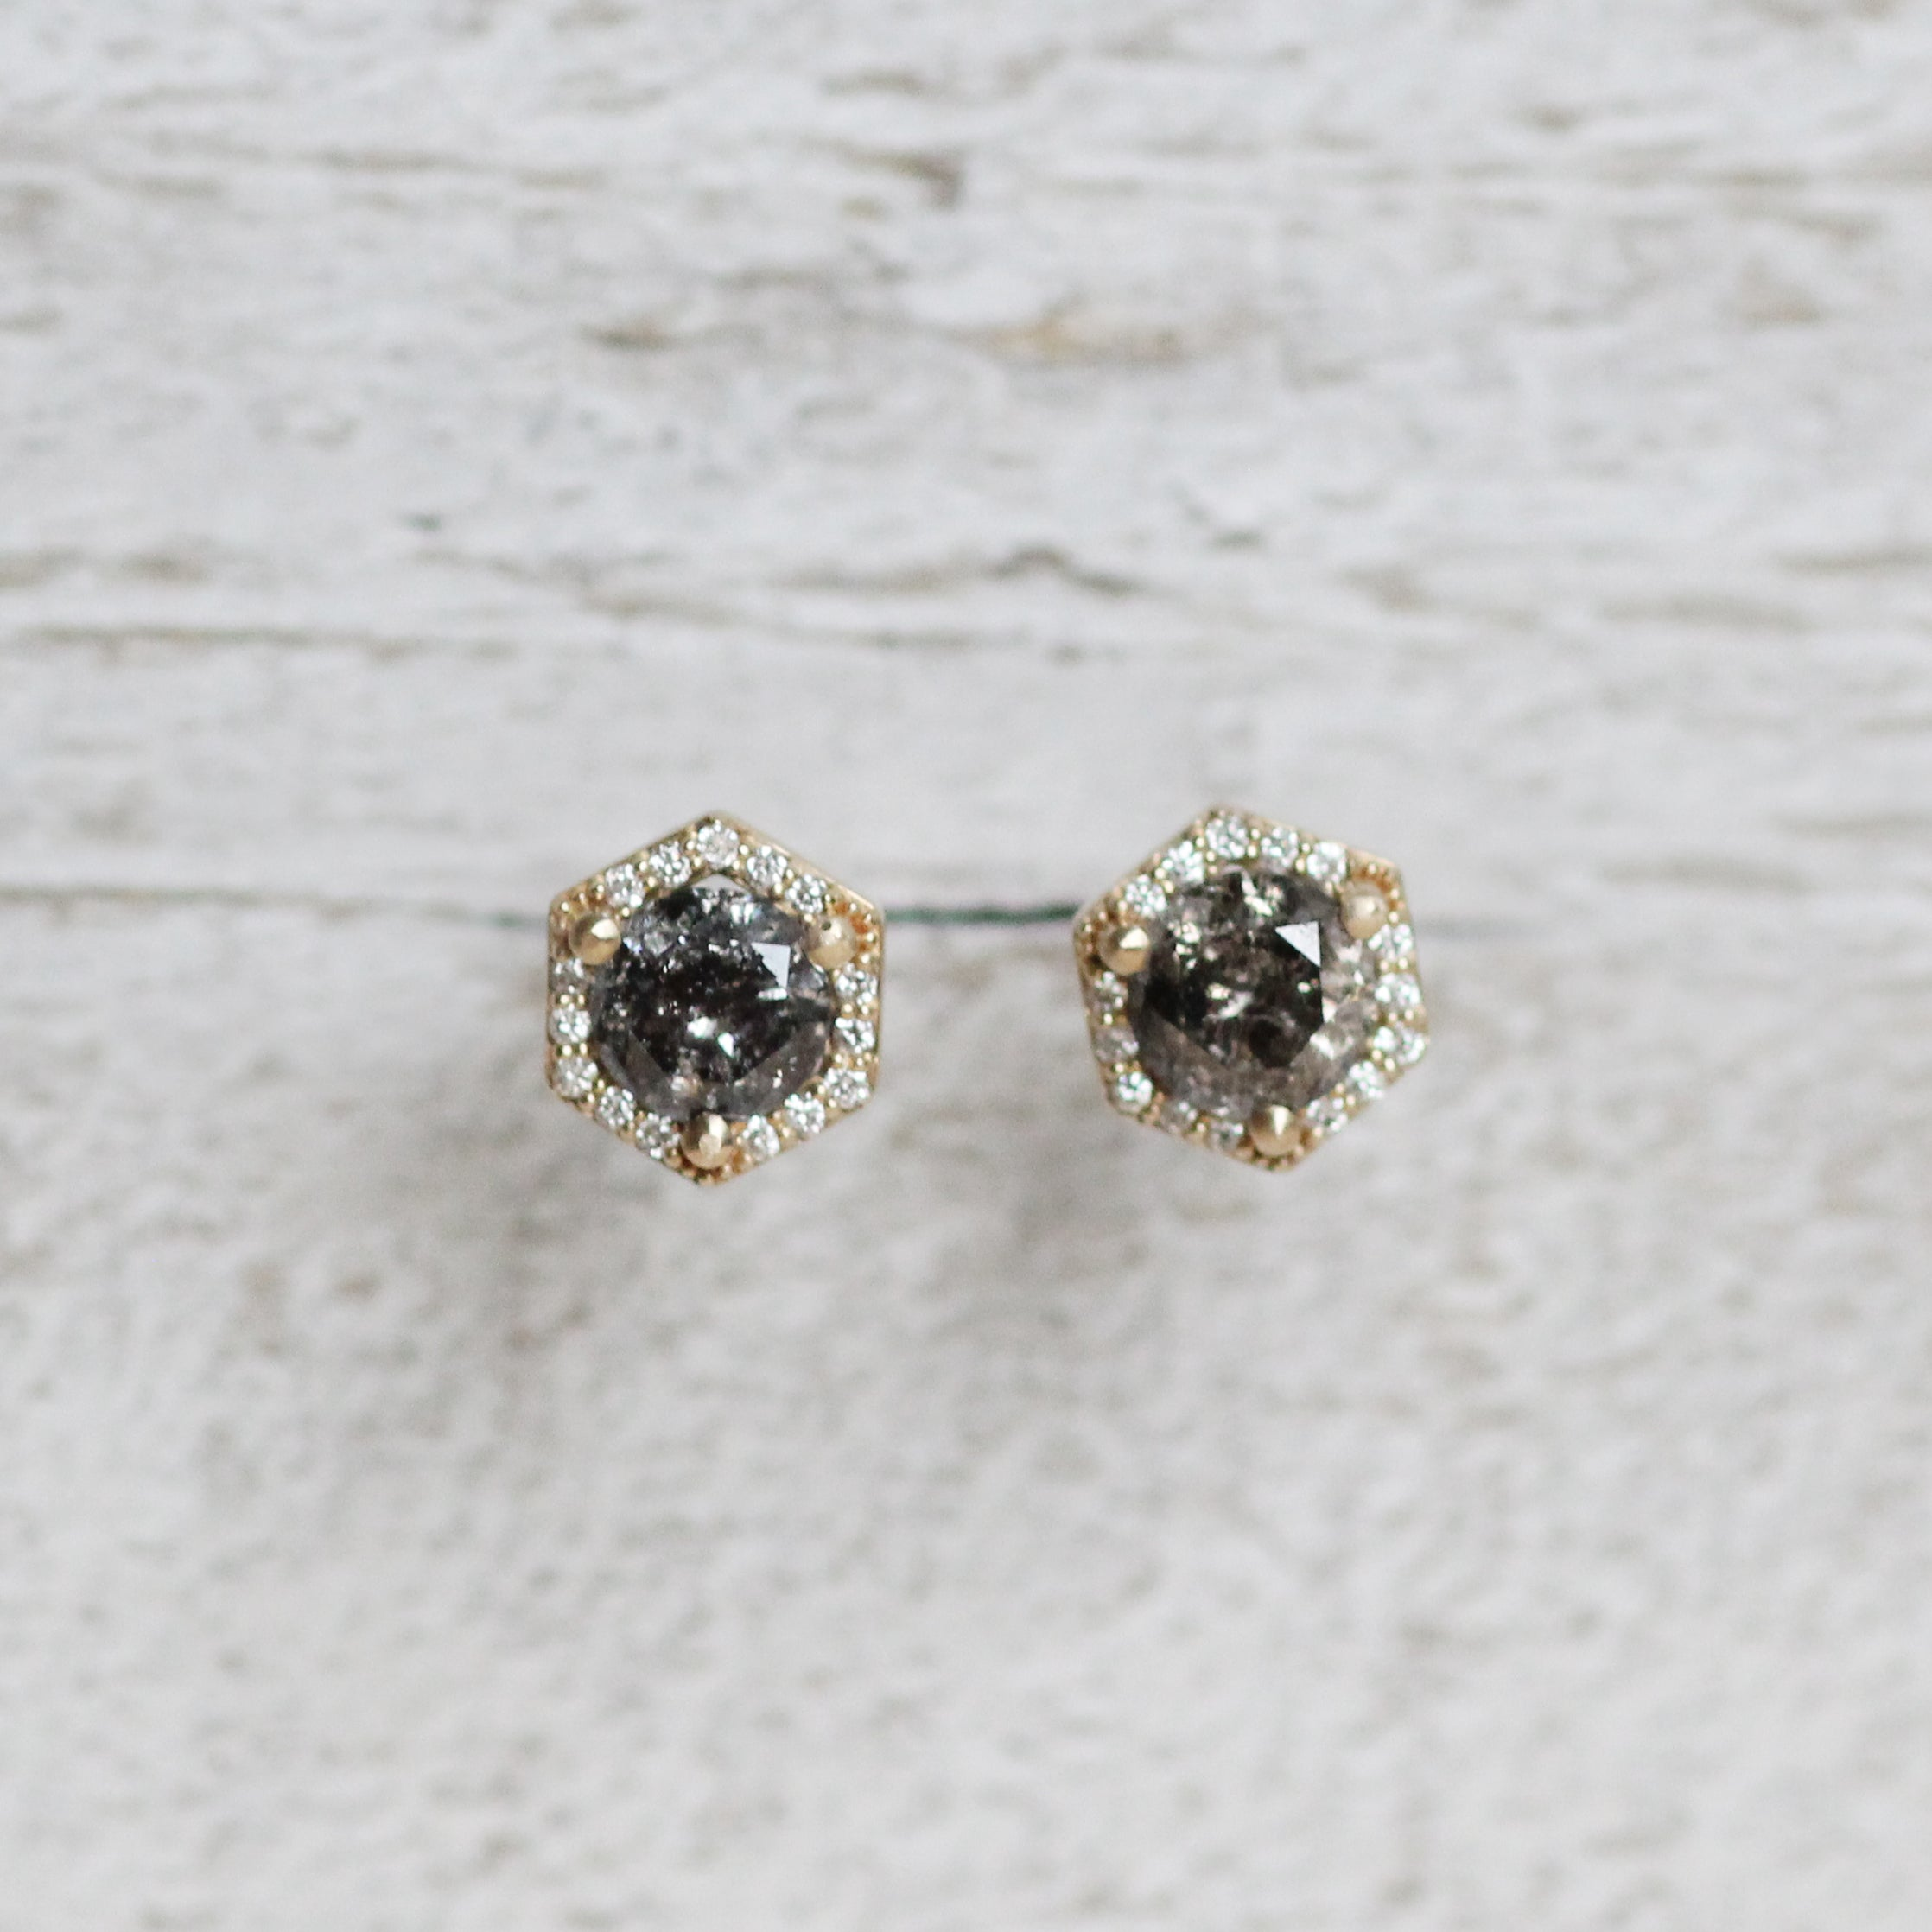 1 Carat Hexagon Halo Earring Stud Pair in 14k Yellow Gold - One of a kind, ready to ship